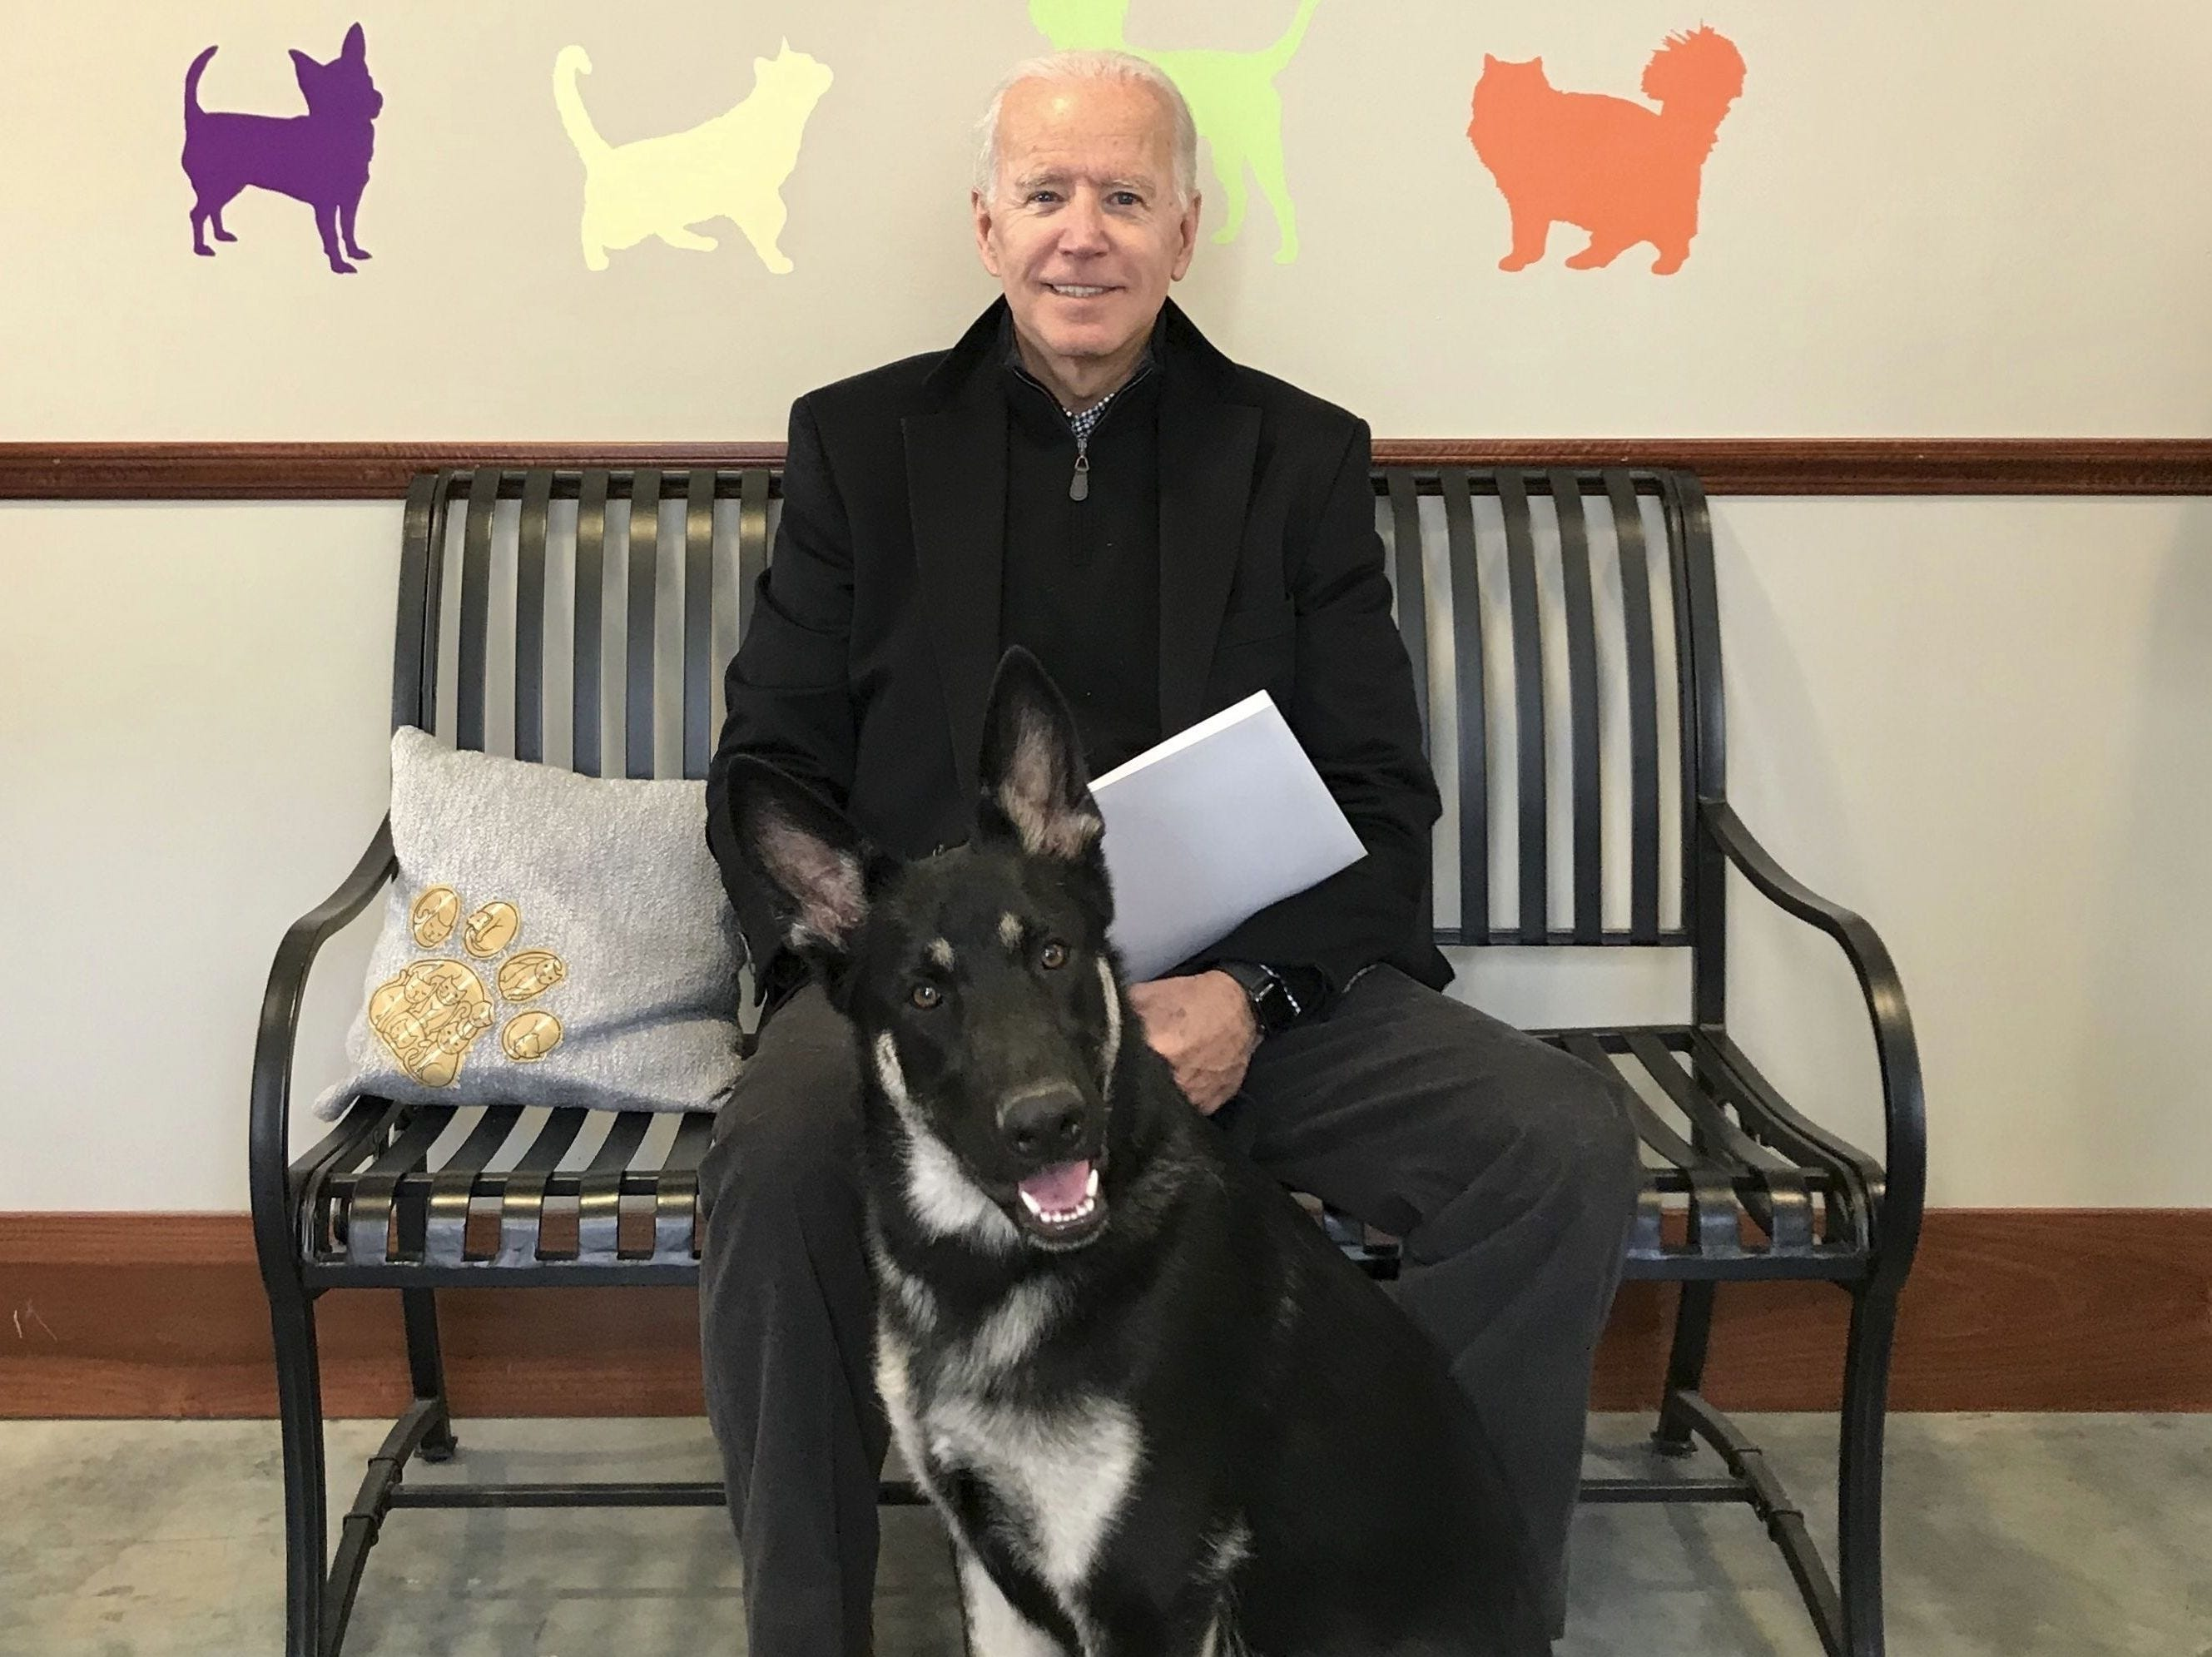 The White House has been without dogs for four years – that s changing with Joe Biden